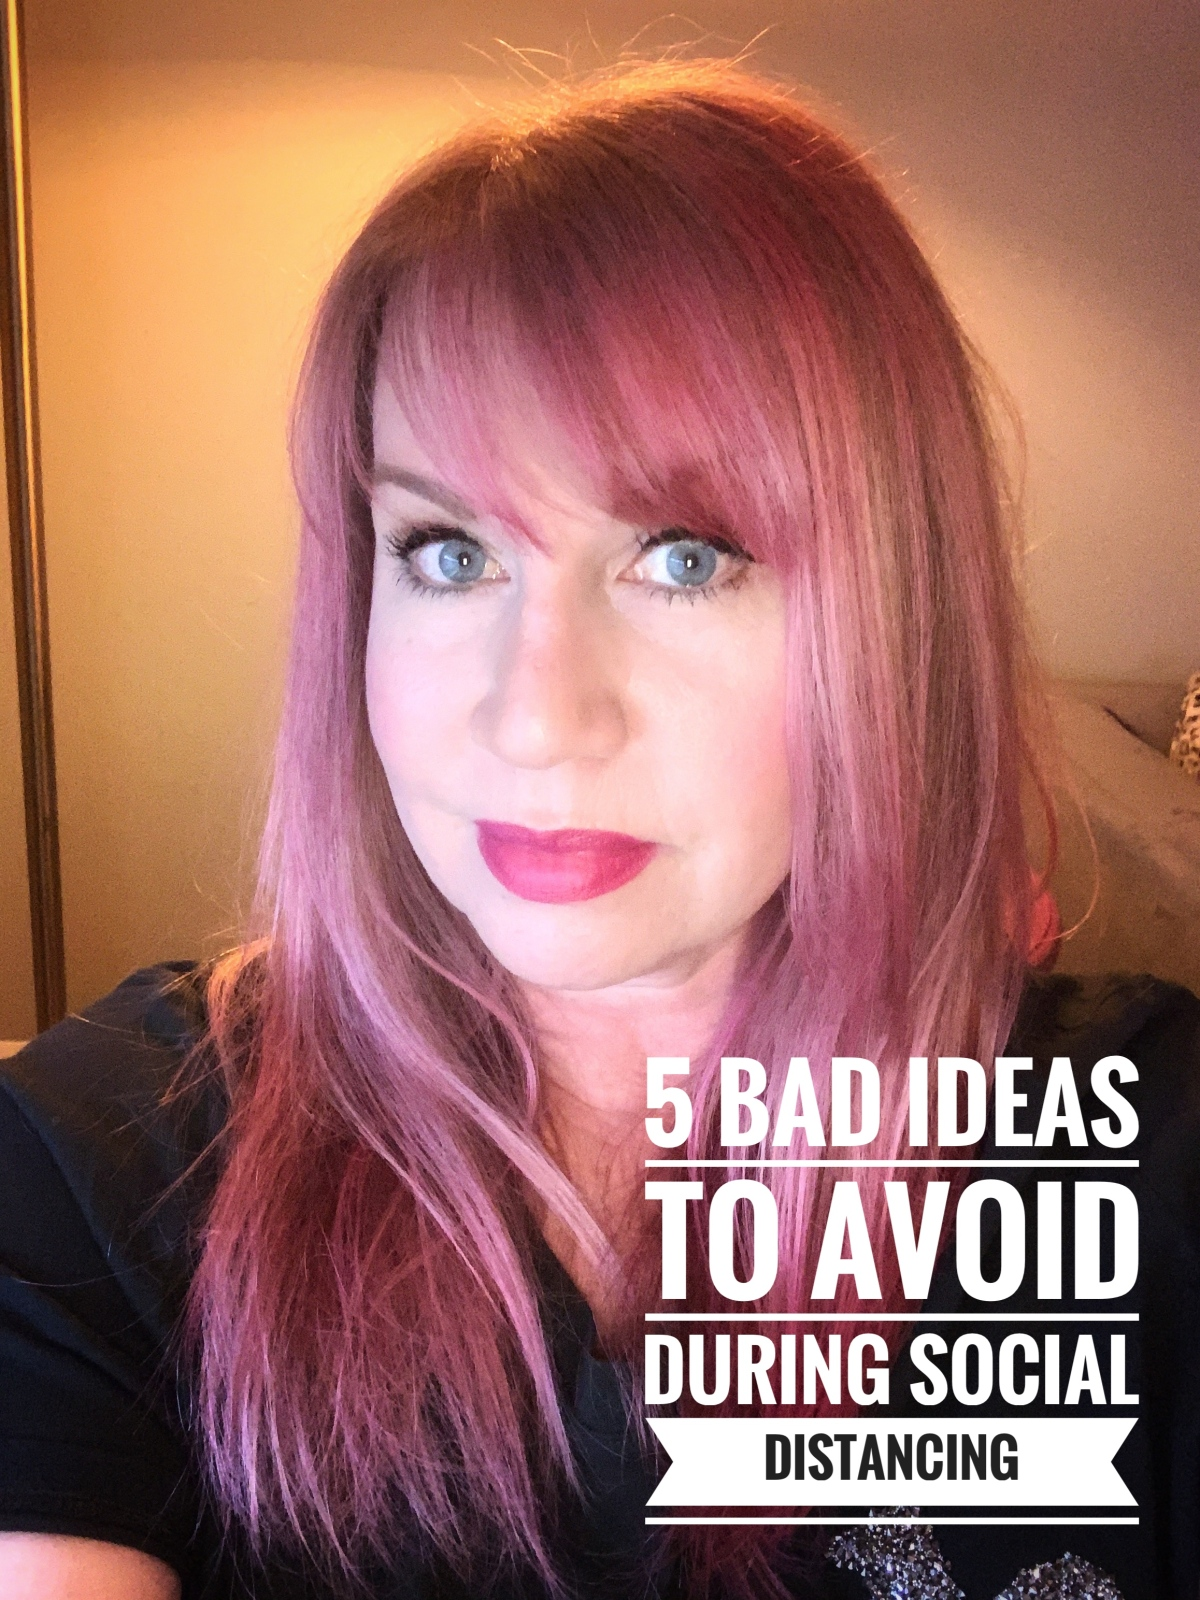 5 Bad Ideas to Avoid During Social Distancing